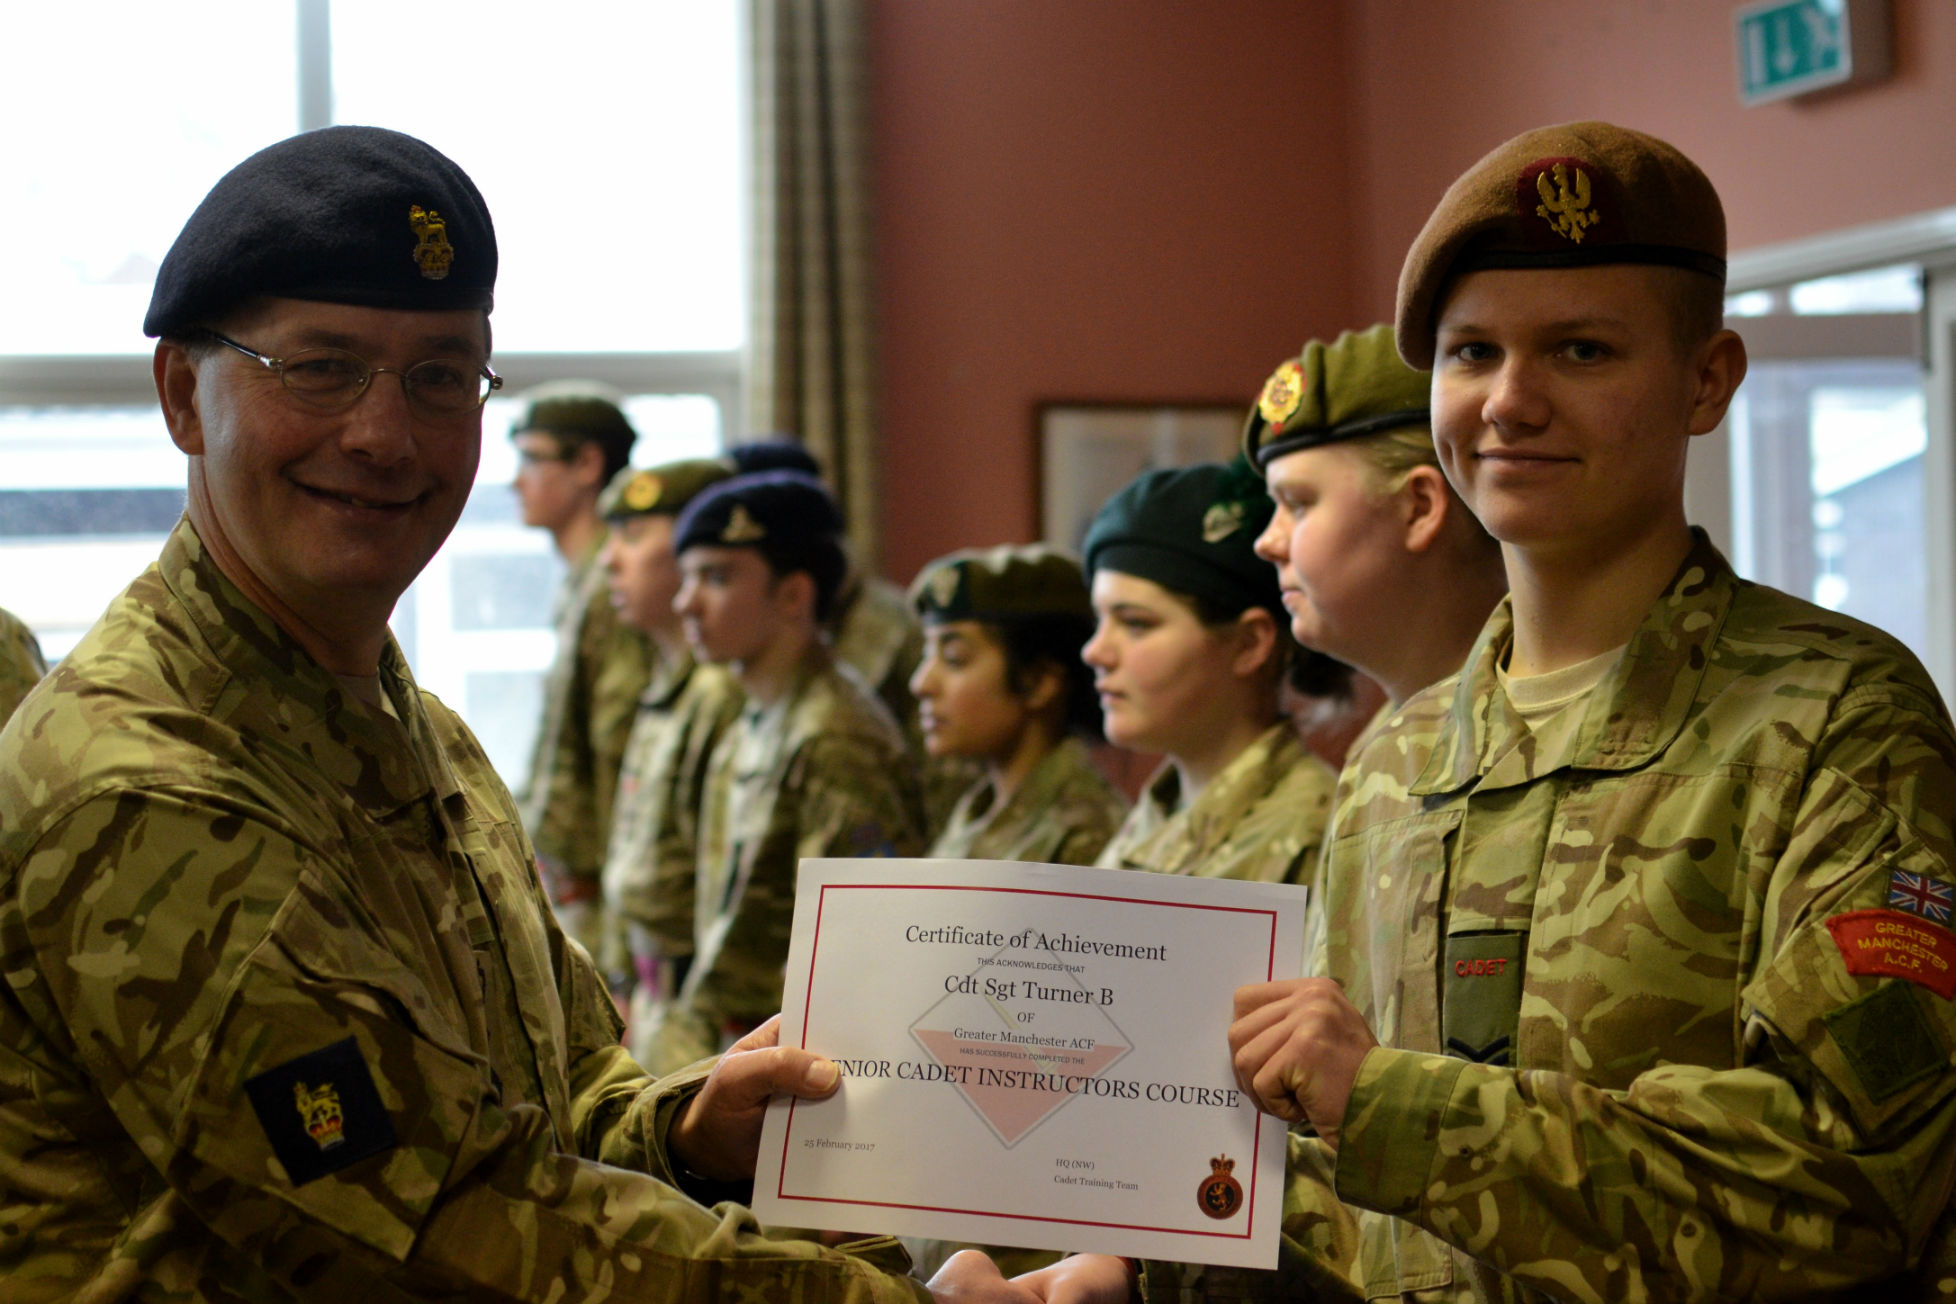 Cadet Success on the Senior Cadet Instructors Course | The Official GMACF Blog